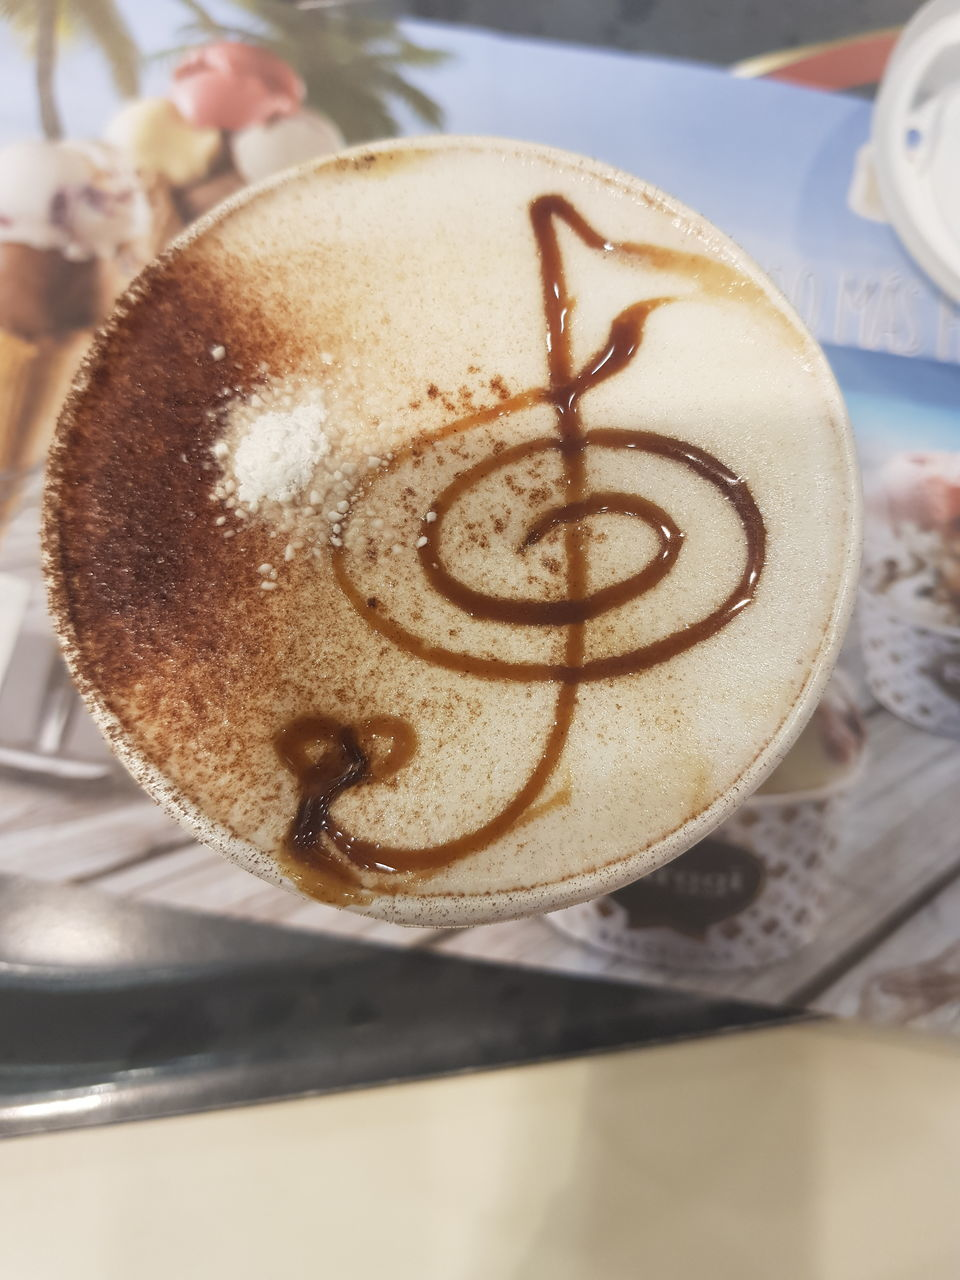 CLOSE-UP OF COFFEE CUP WITH CAPPUCCINO